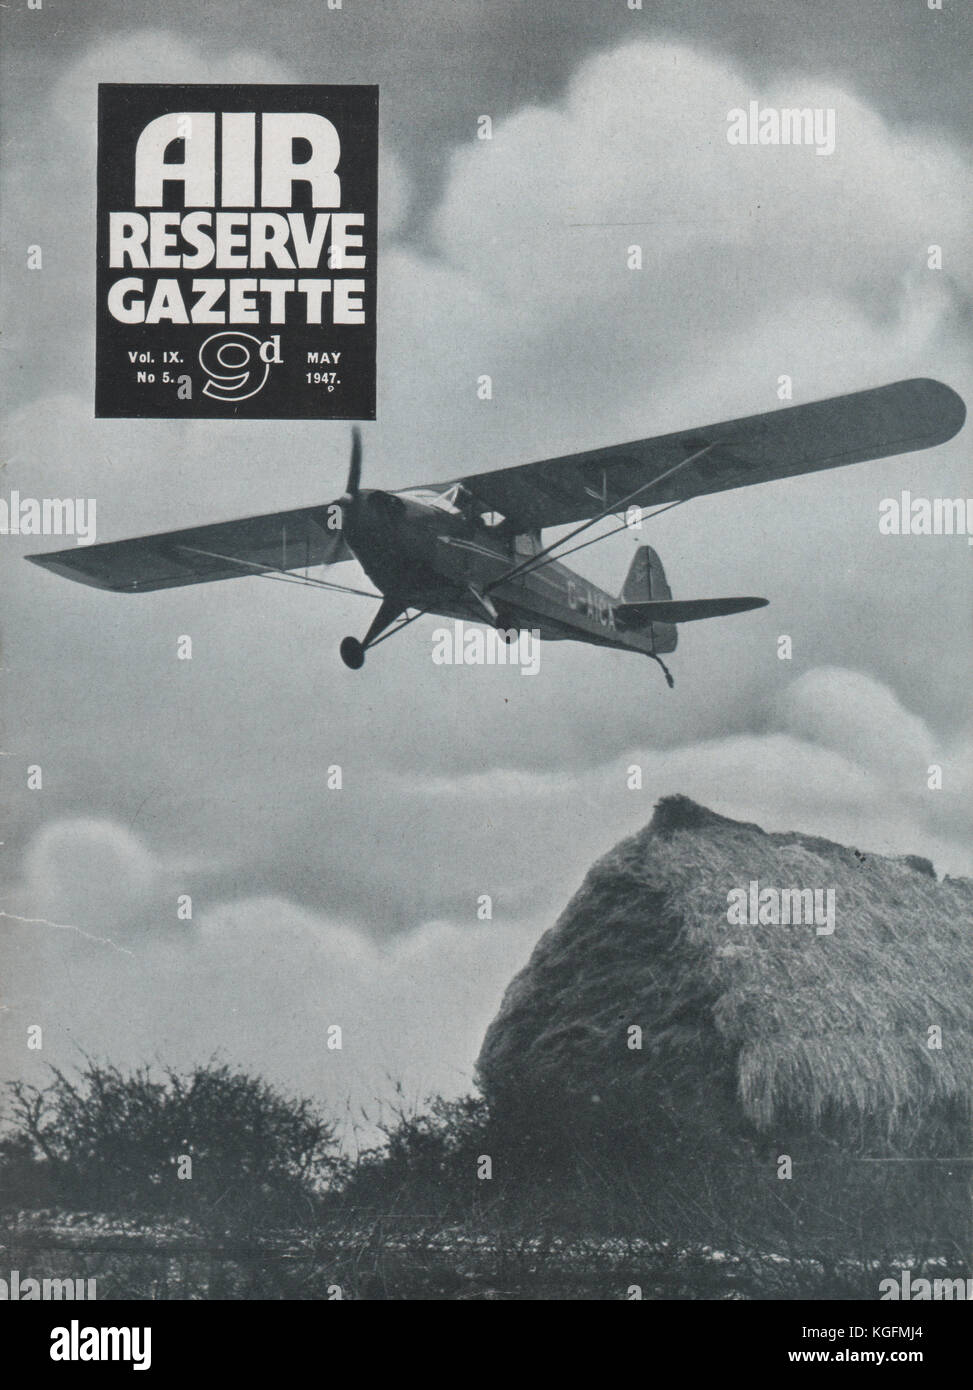 Vintage Air Reserve Gazette magazine cover dated May 1947 showing an Auster Arrow light aircraft of the post war - Stock Image